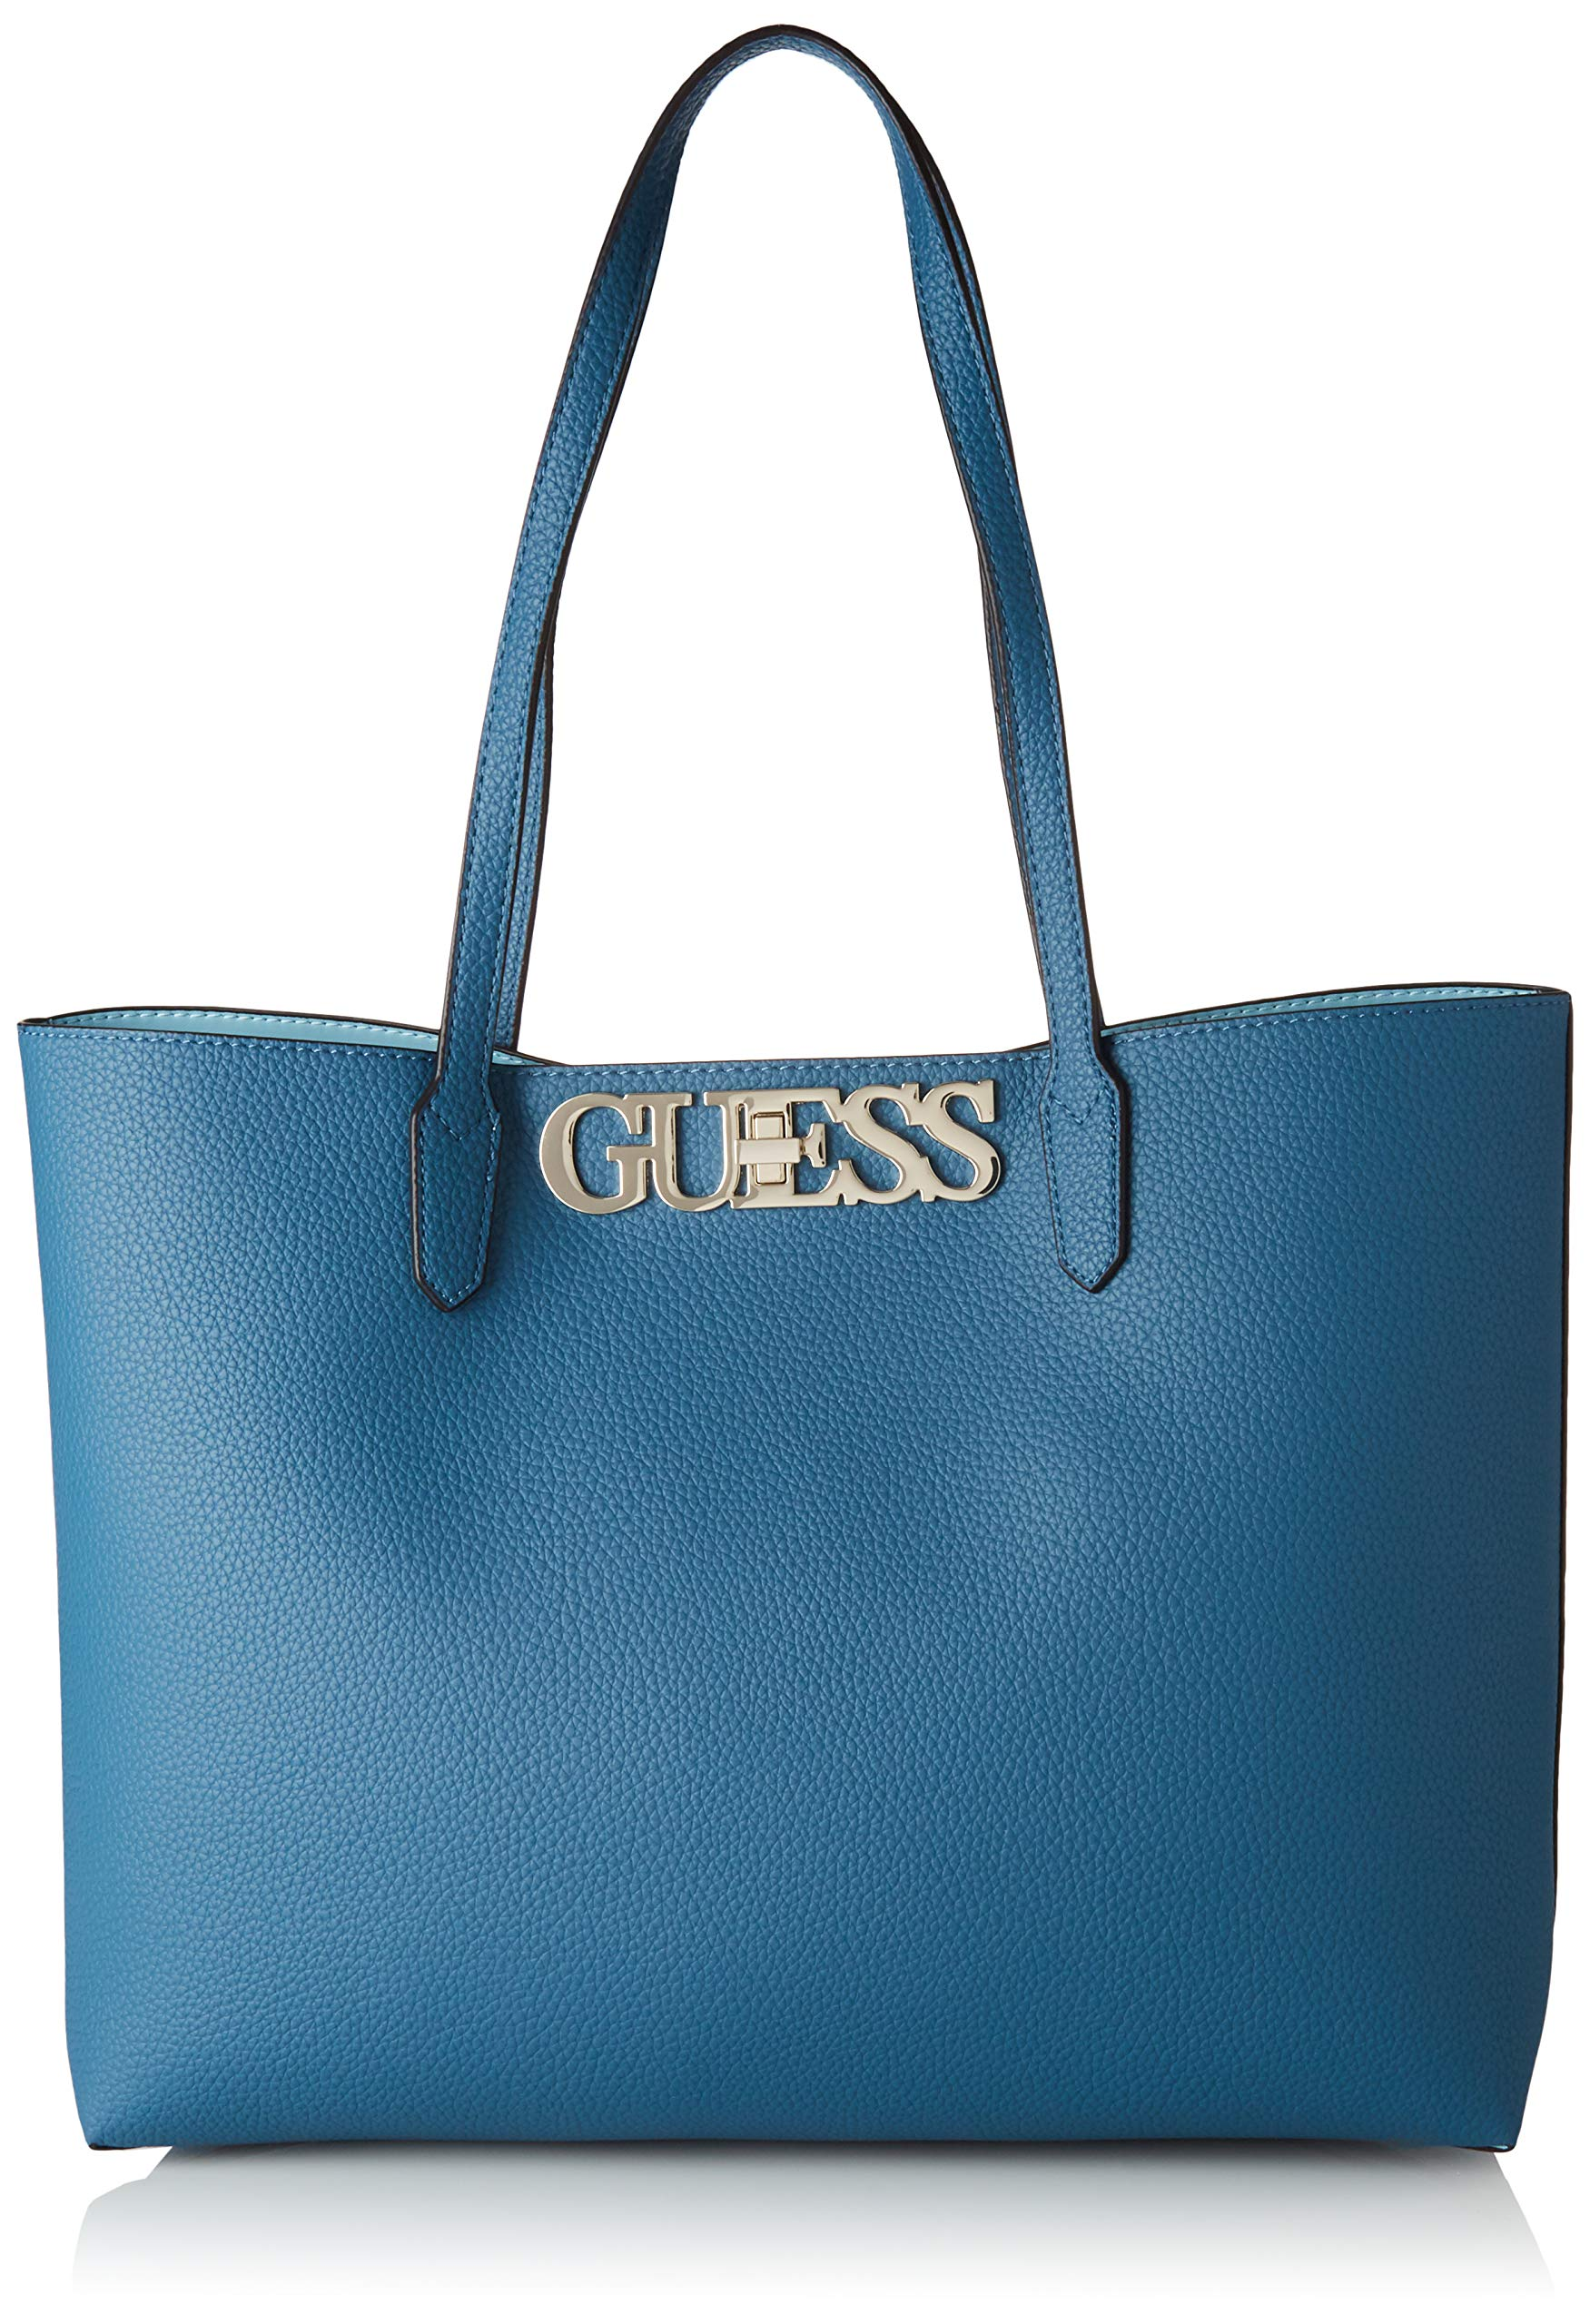 GUESS UPTOWN CHIC BARCELONA